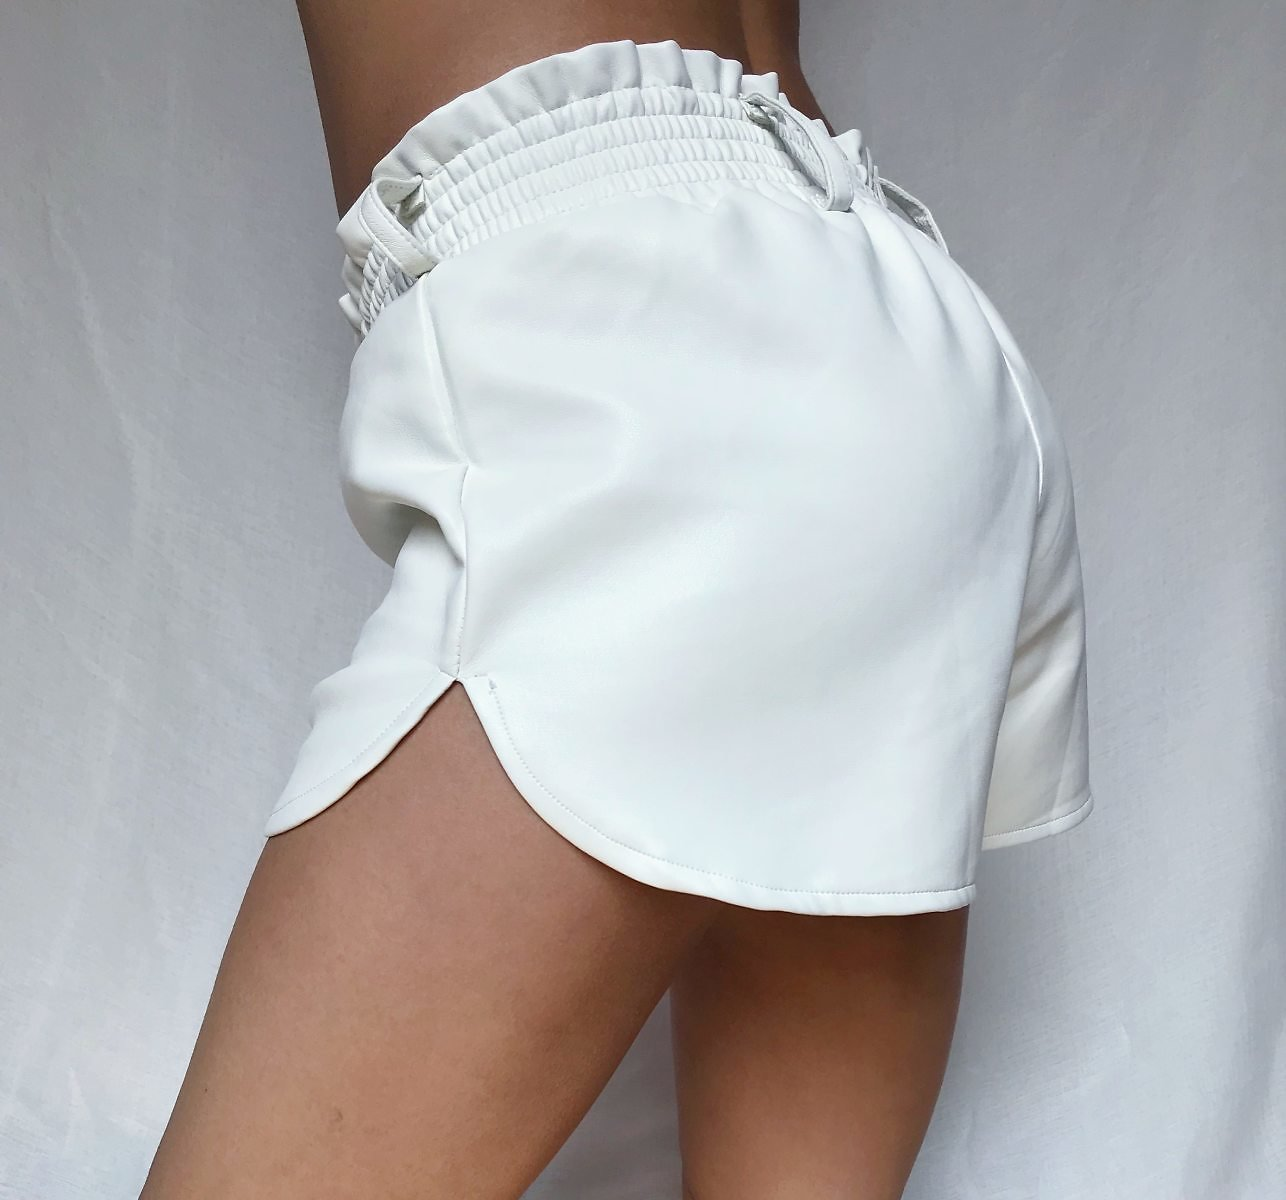 US $13.99 40% OFF|Elastic High Waist White Leather Shorts Women Loose Faux Leather Runner Shorts Autumn Streetwear Sexy Wide Leg Shorts For Women|Shorts| - AliExpress